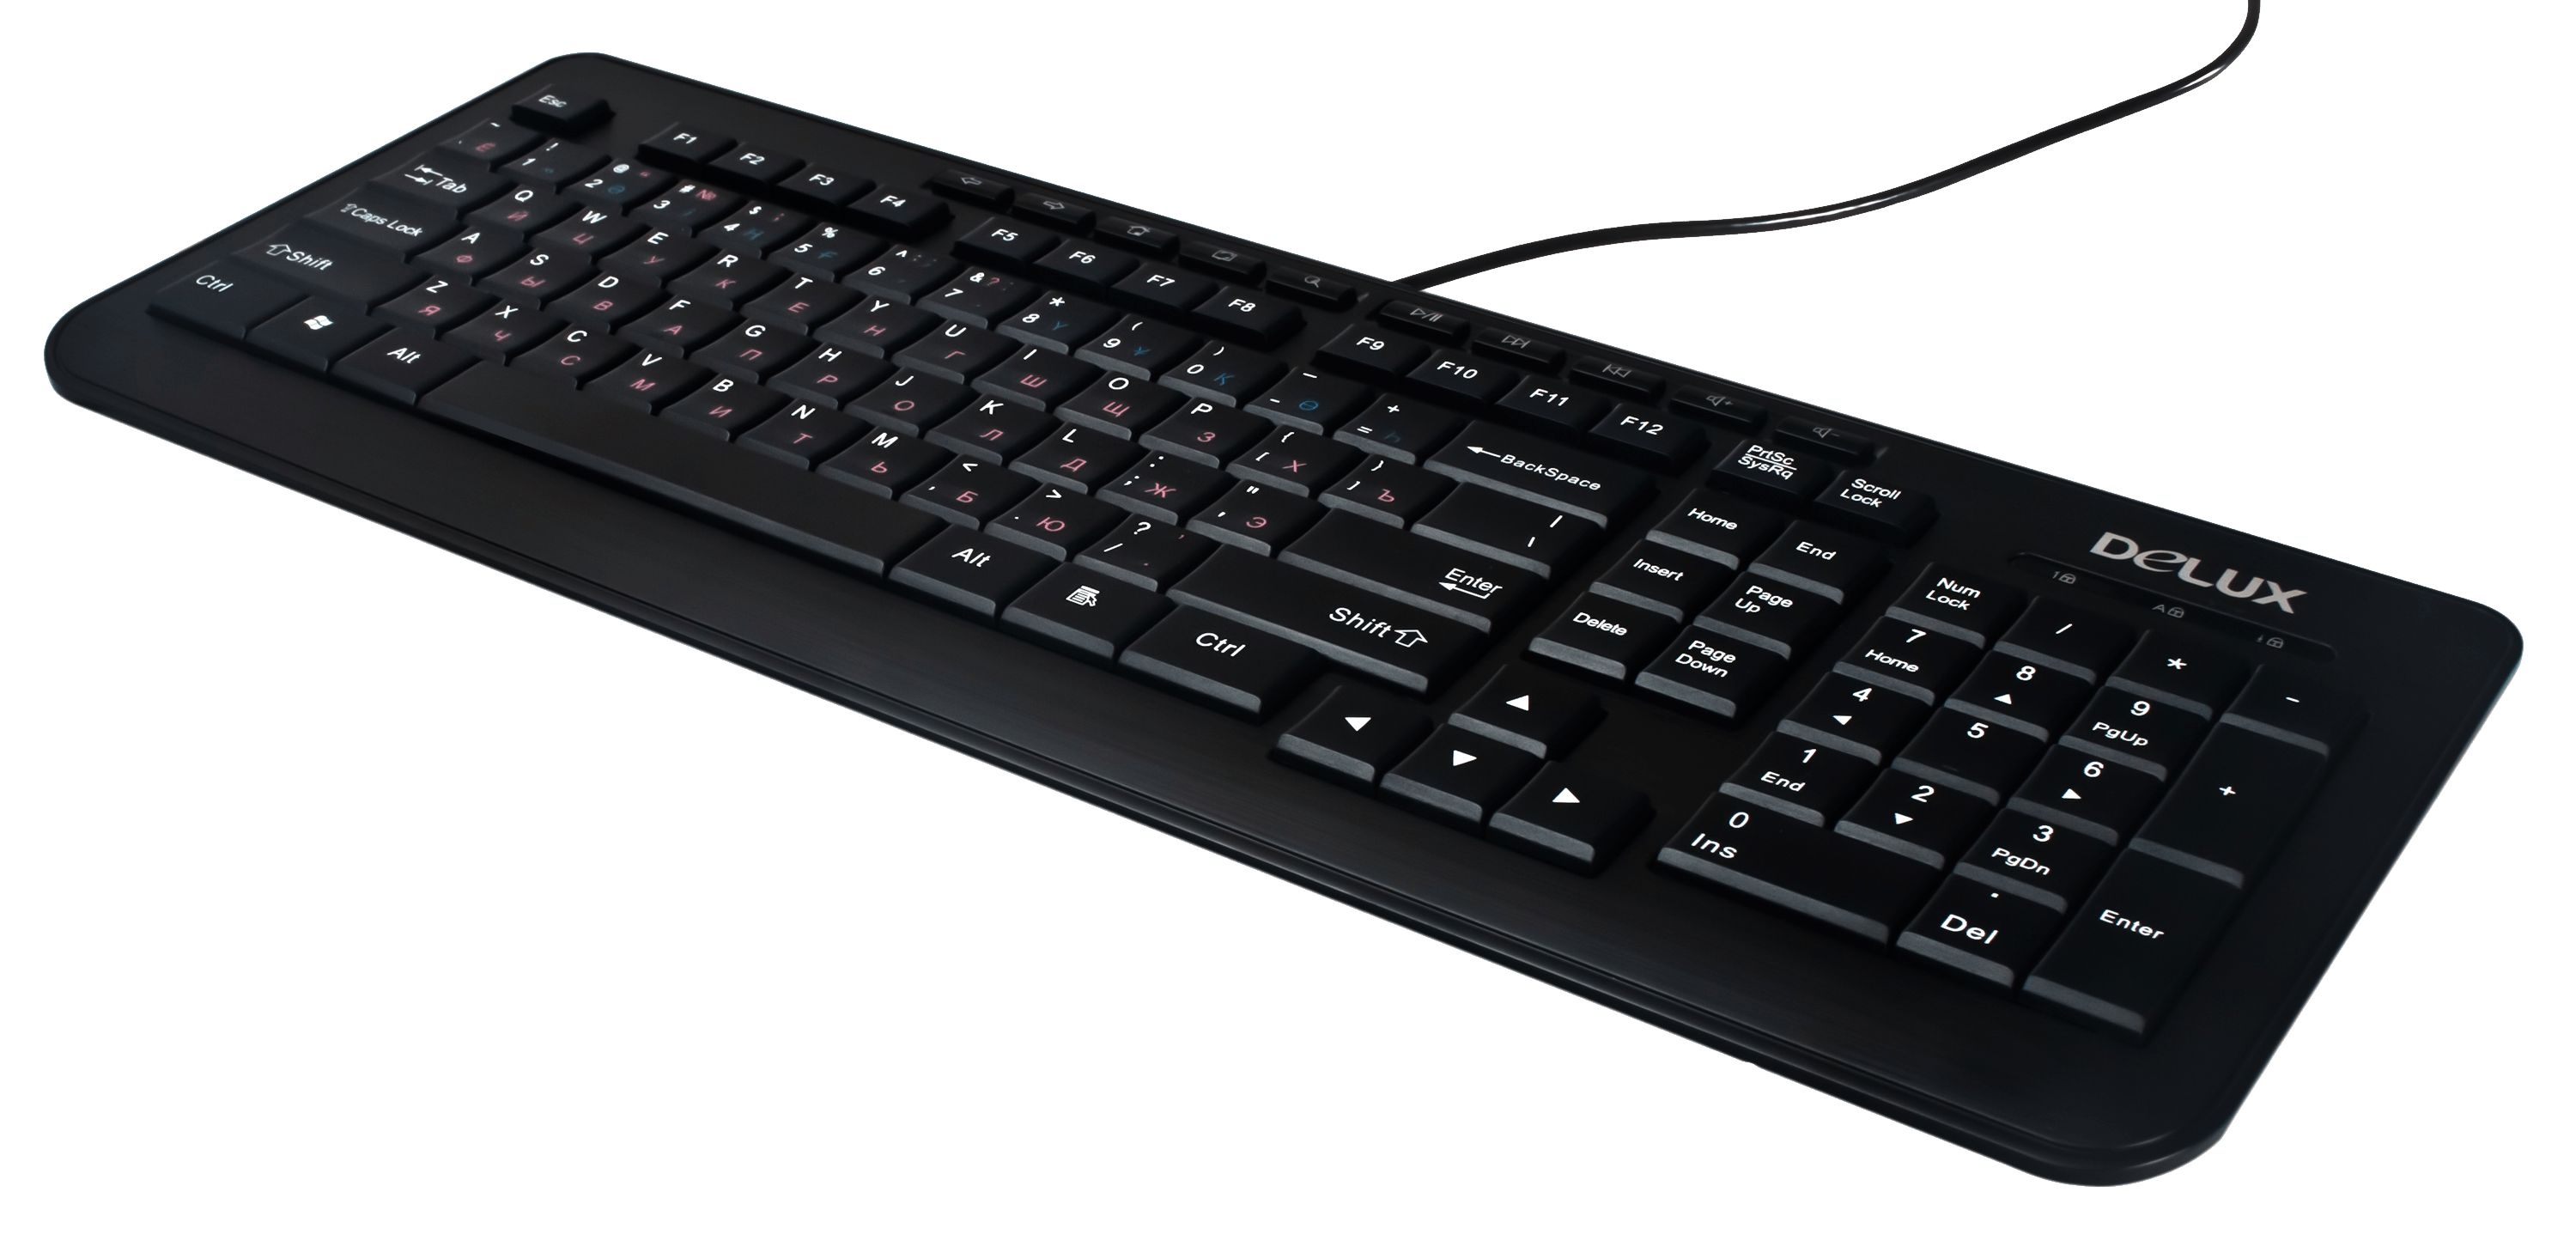 Pc Keyboard Png Image PNG Image